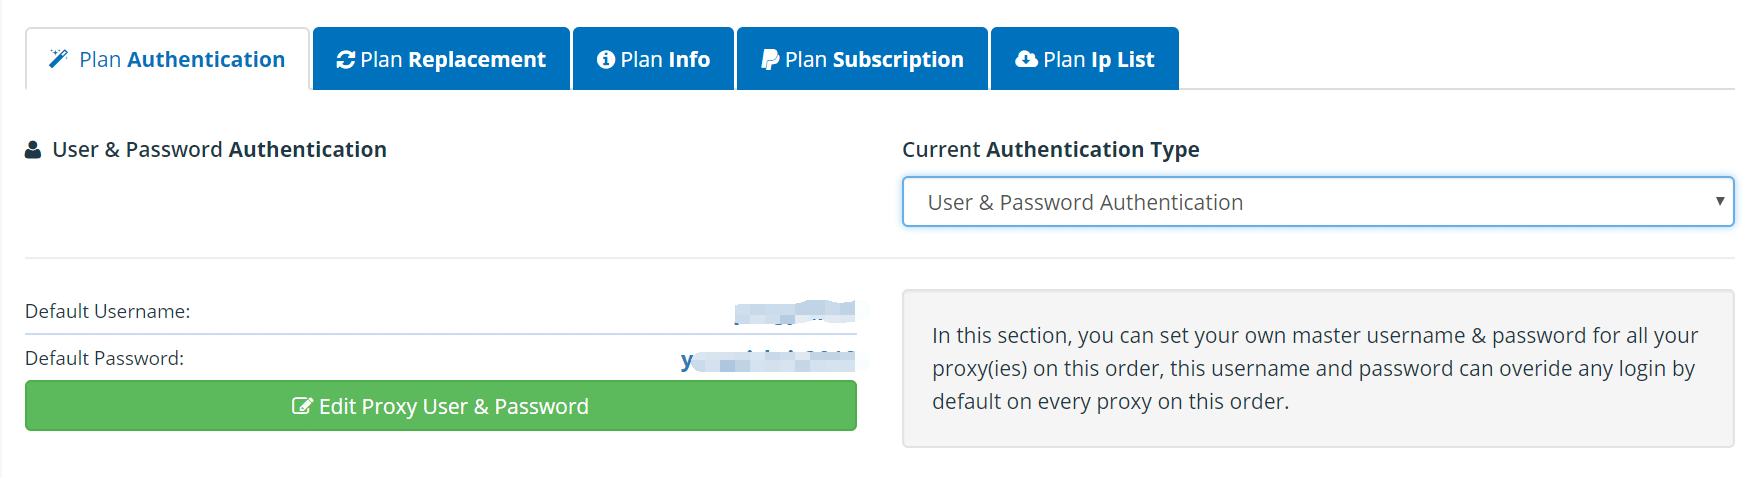 YPP Authentication